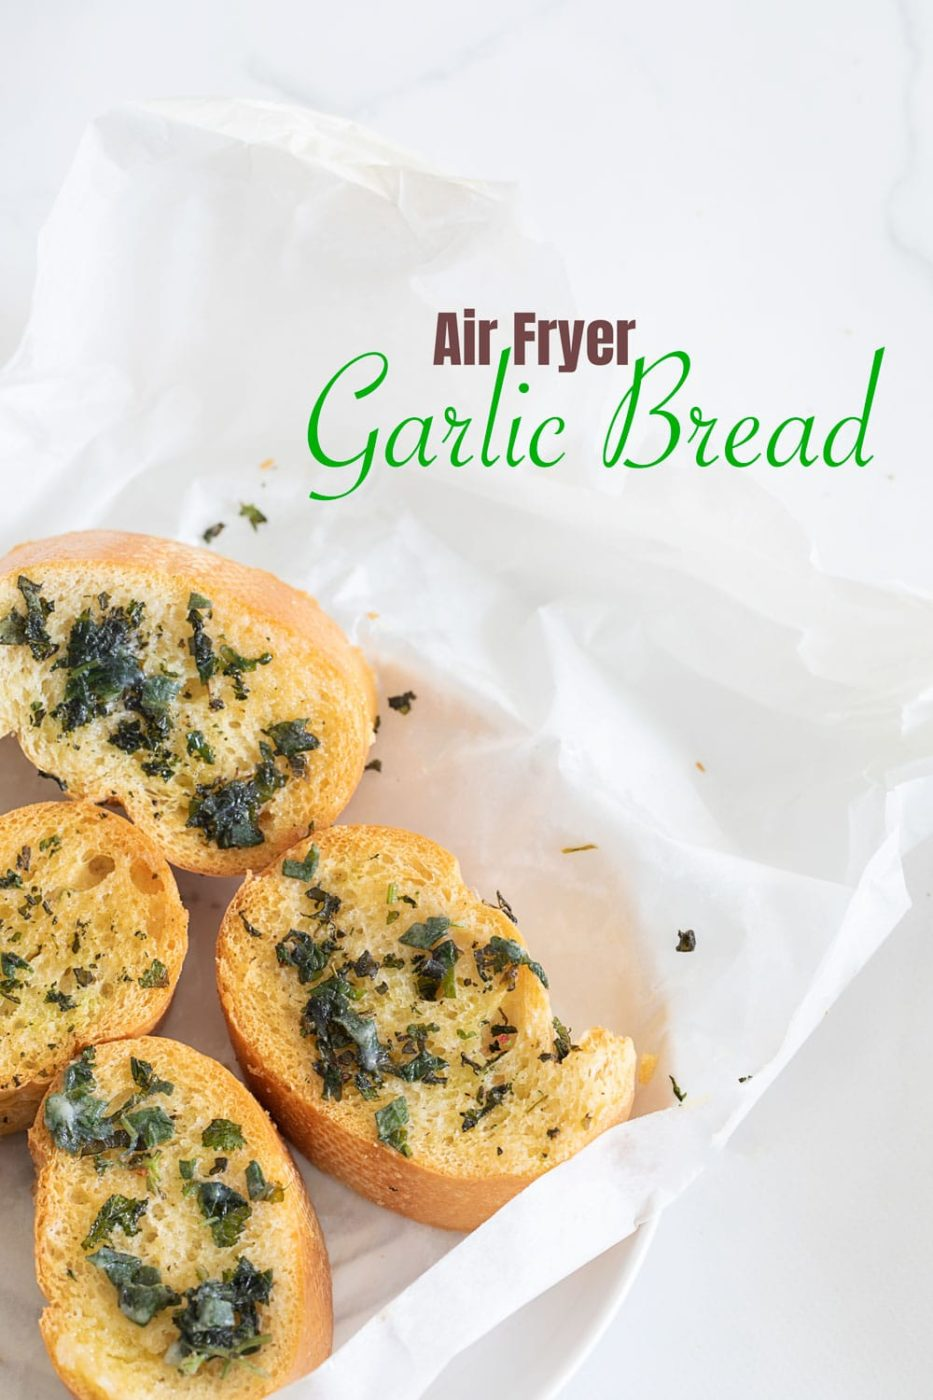 Top view of garlic bread on wax paper and white plate placed on the left corner of the image.